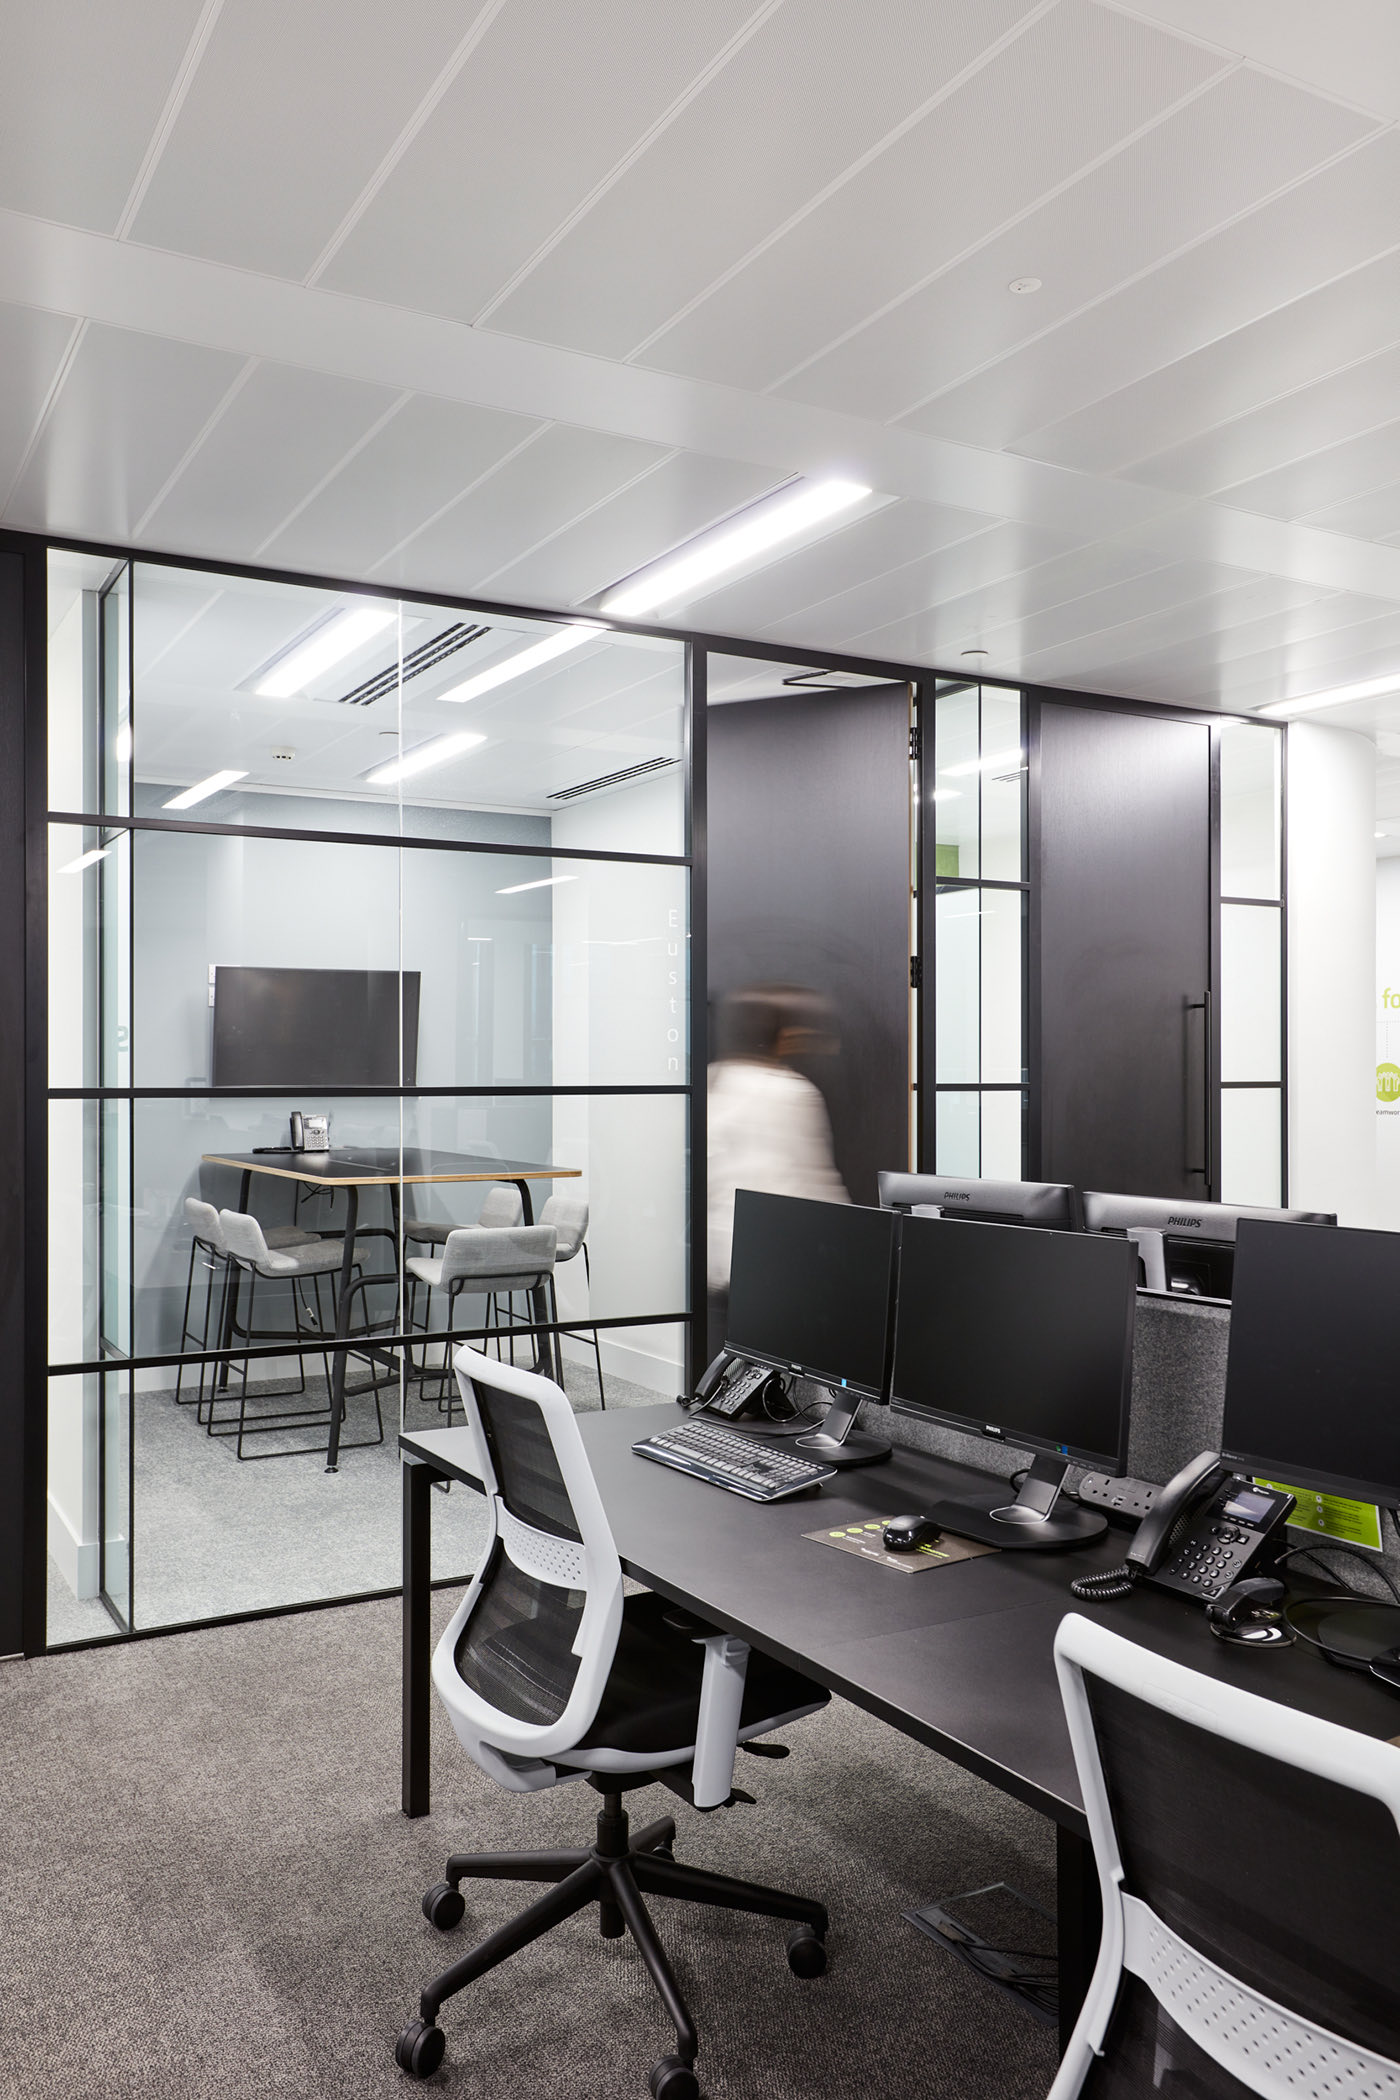 mha-london-office-9